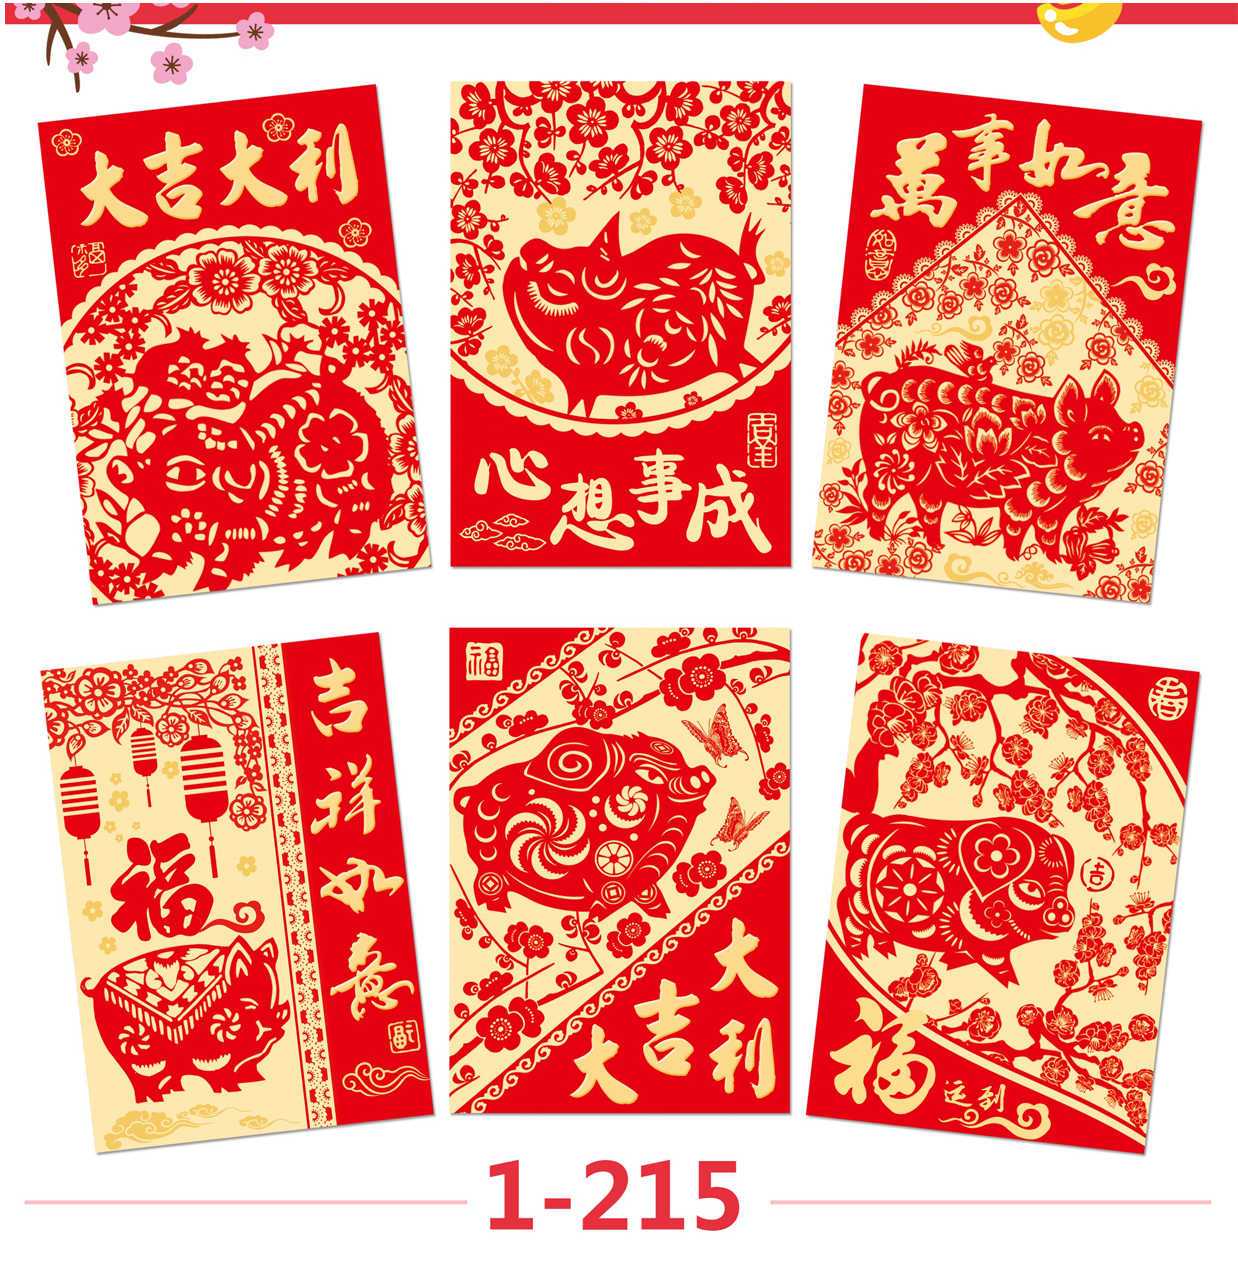 China Paper Cut Pig Design Red Packet 2019 Chinese Lunar New Year Red Envelope 10 Packs 60 Pcs 1 215